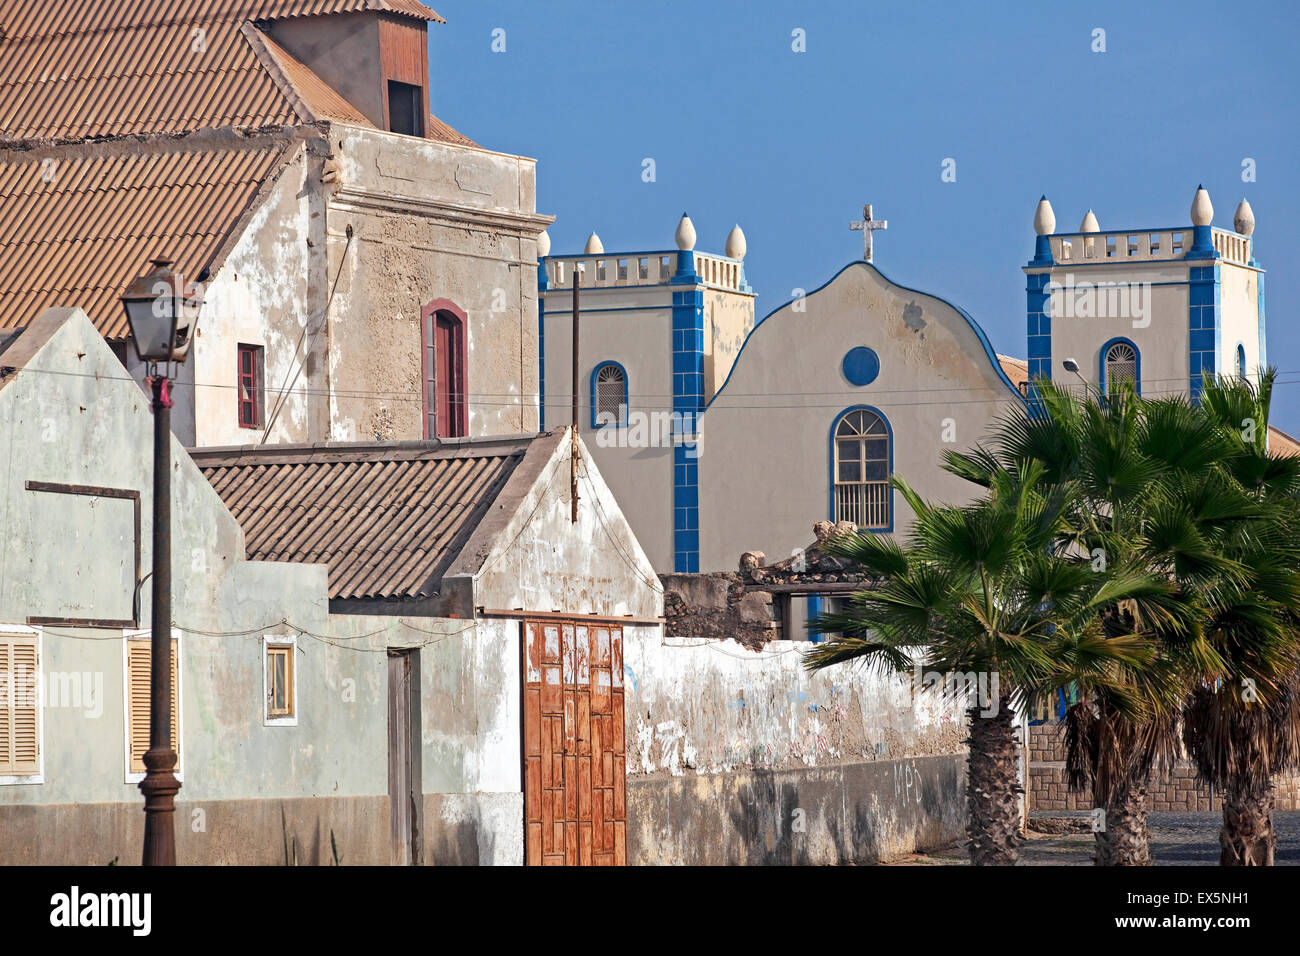 Portugese colonial buildings and Igreja de Santa Isabel Church in village Sal Rei on the island Boa Vista, Cape - Stock Image